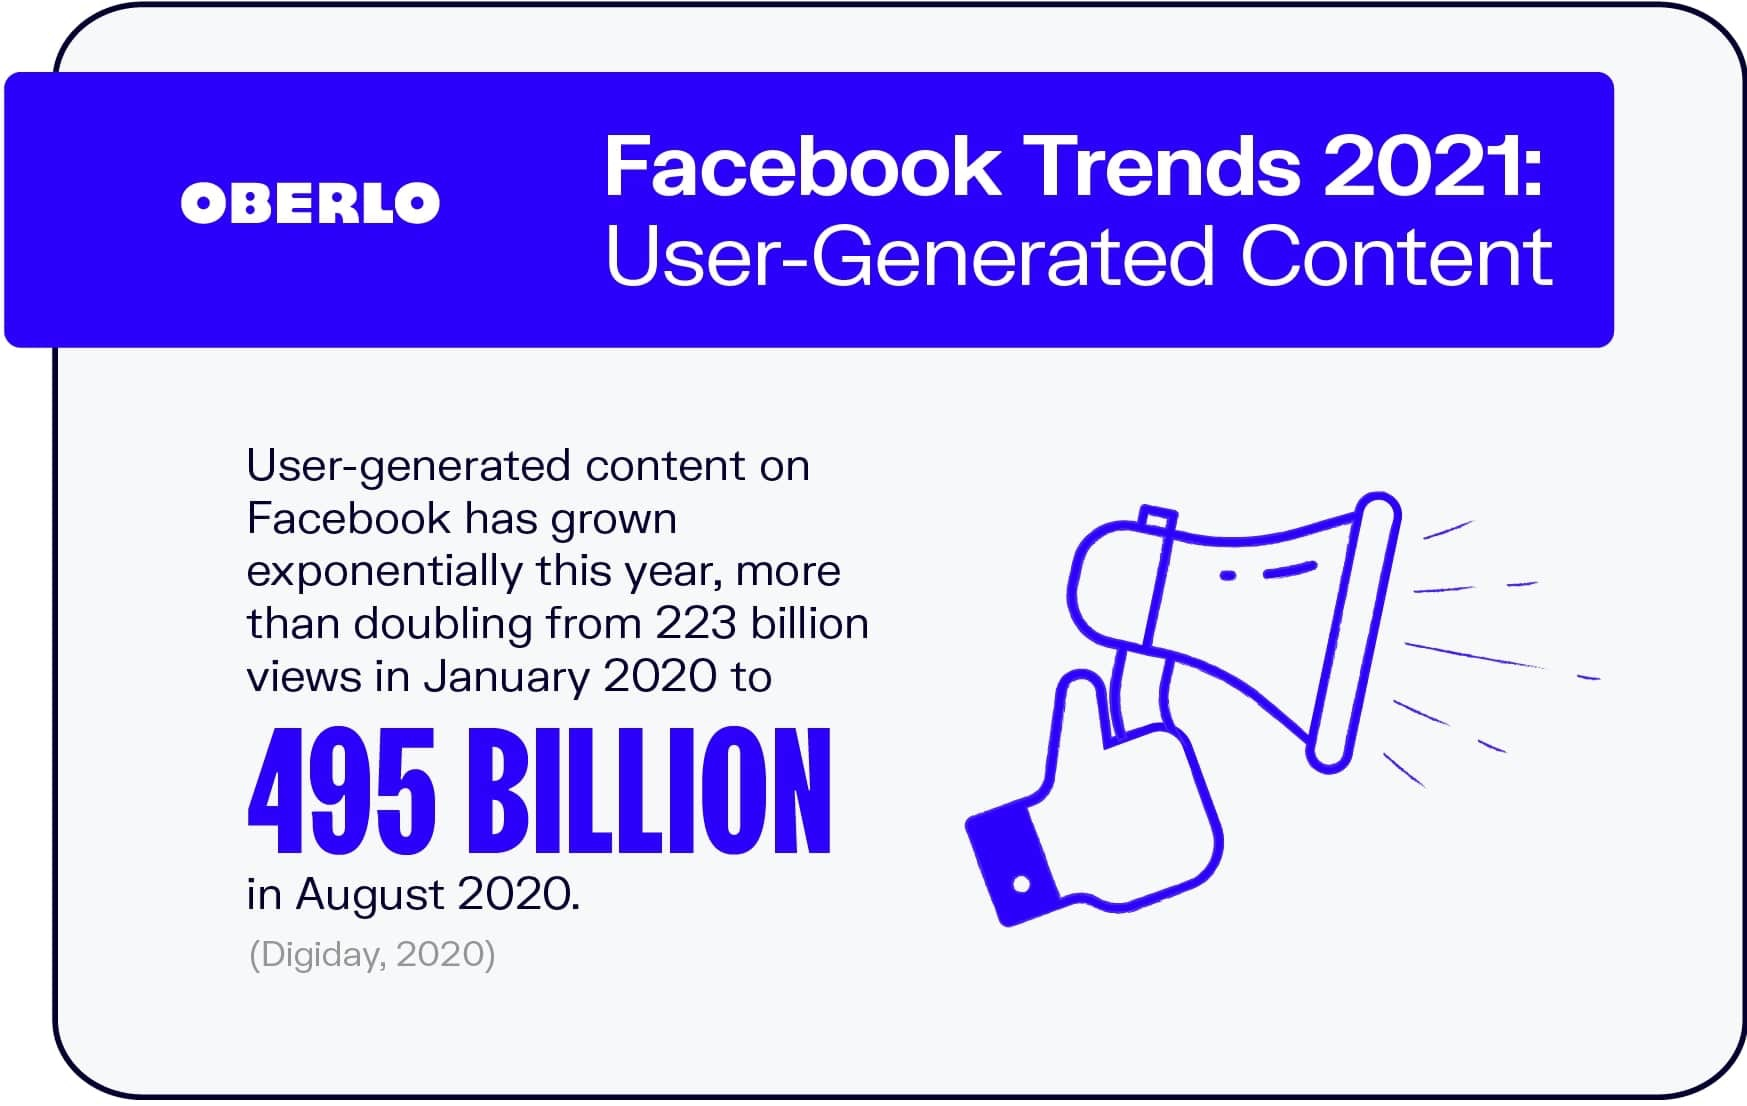 Facebook Trends 2021: User-Generated Content